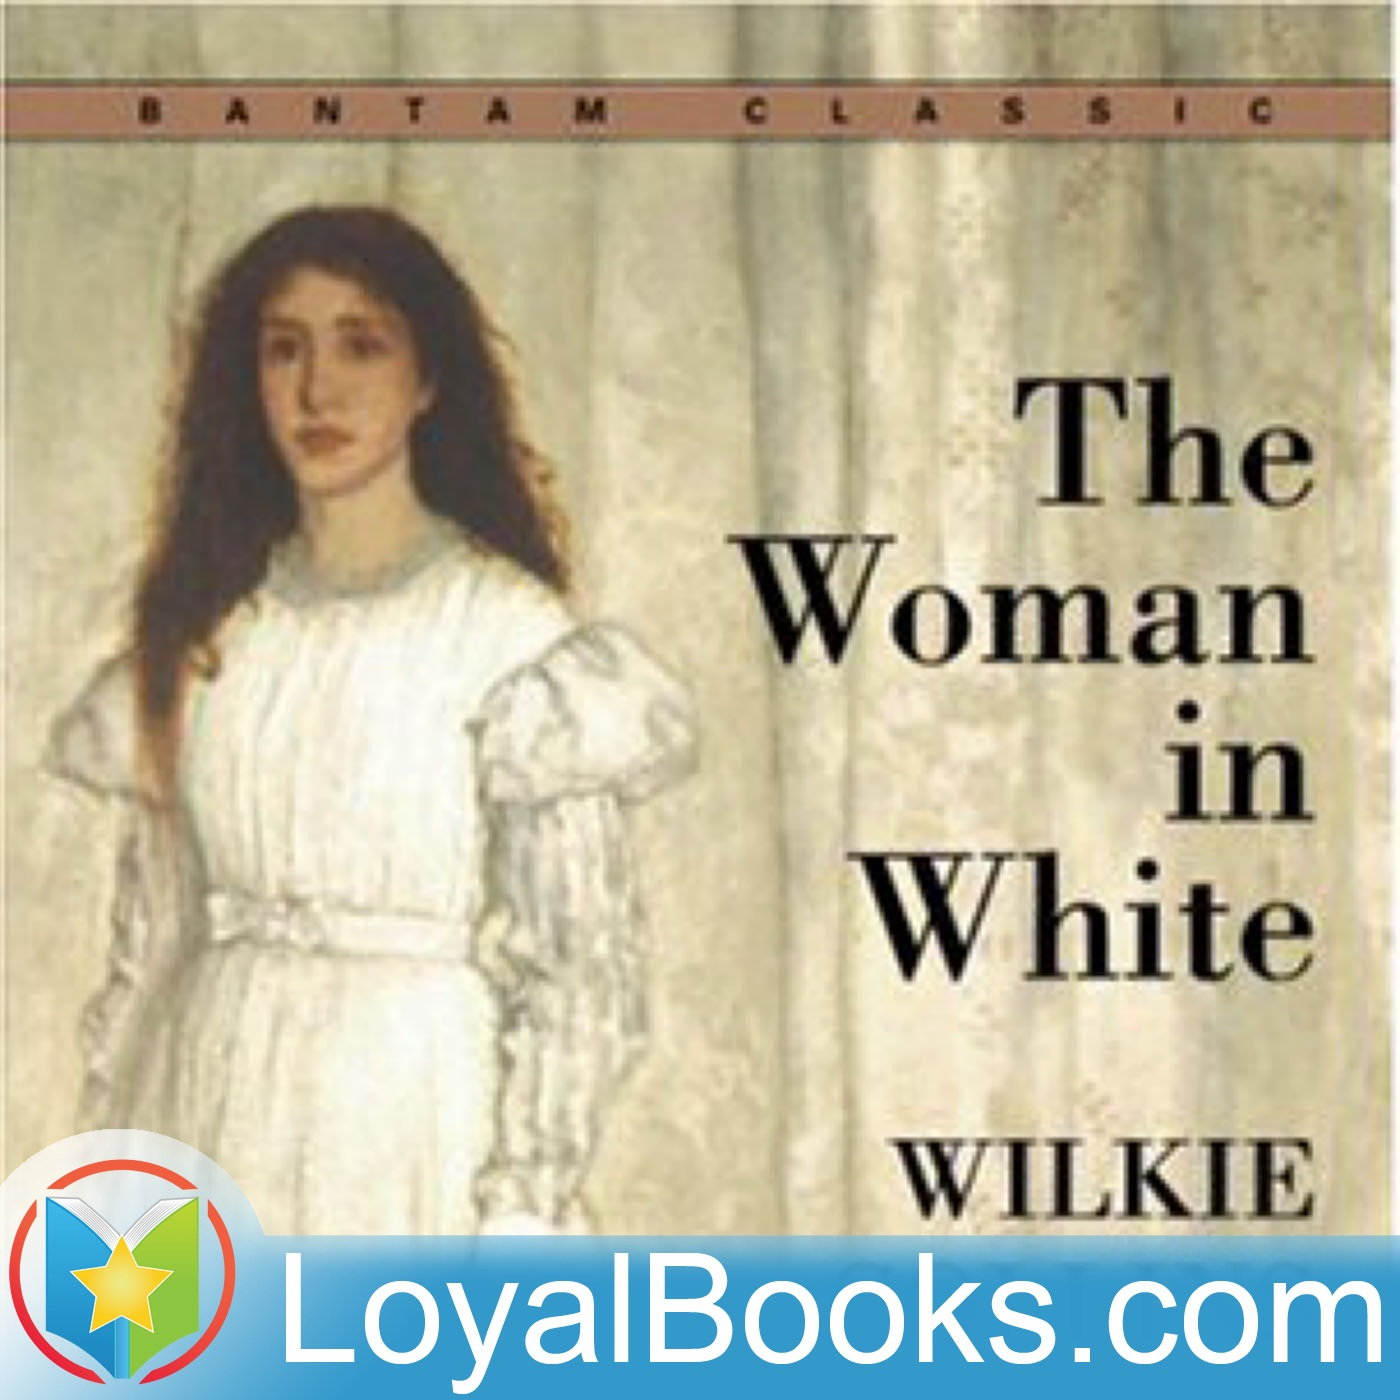 <![CDATA[The Woman in White by Wilkie Collins]]>